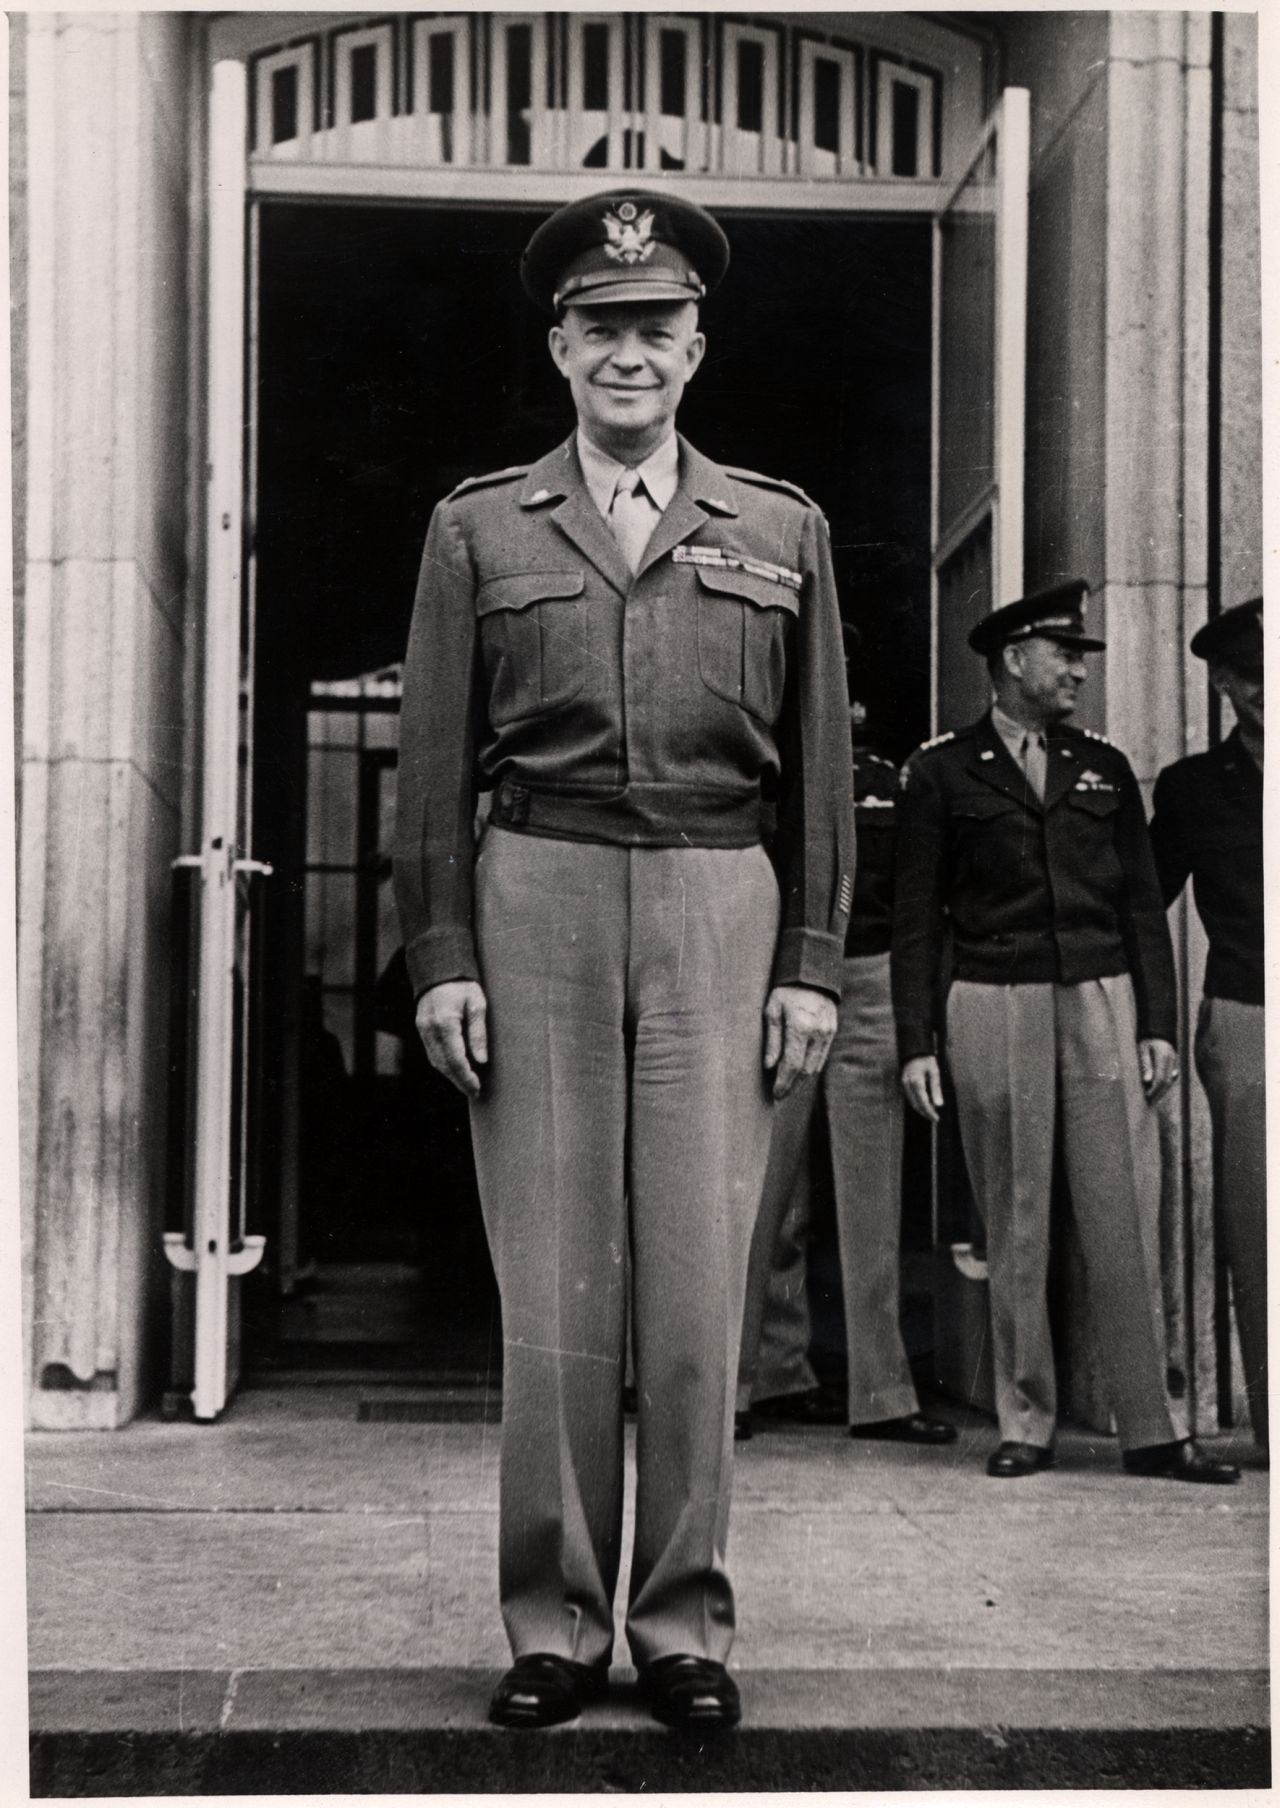 Generalstabschef Dwight D. Eisenhower vor dem Gebäude des Office of Military Government for Germany (U.S.) (OMGUS).